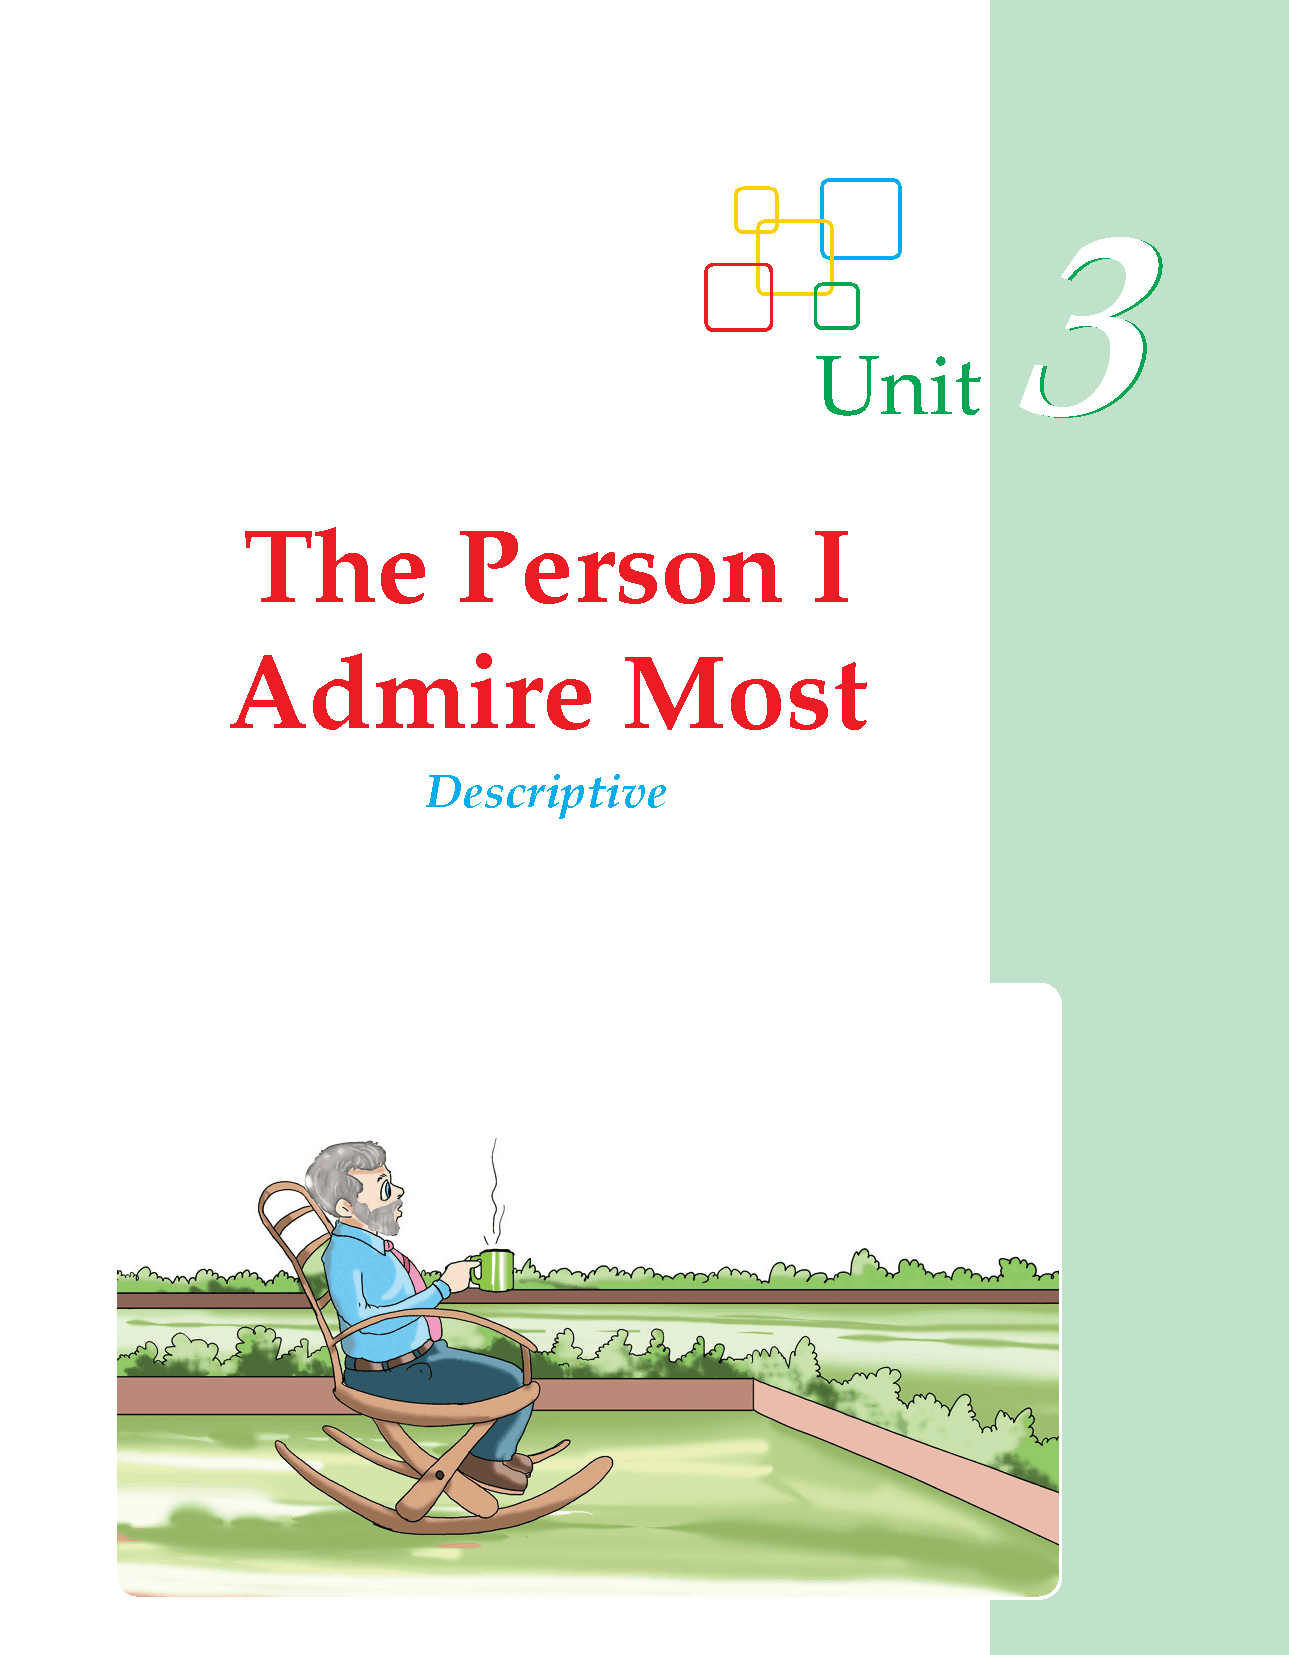 essay the person i admire most my mother My father: the person i admire most over time, there have been several people who have influenced various aspects of my life, based on their personal characteristics.